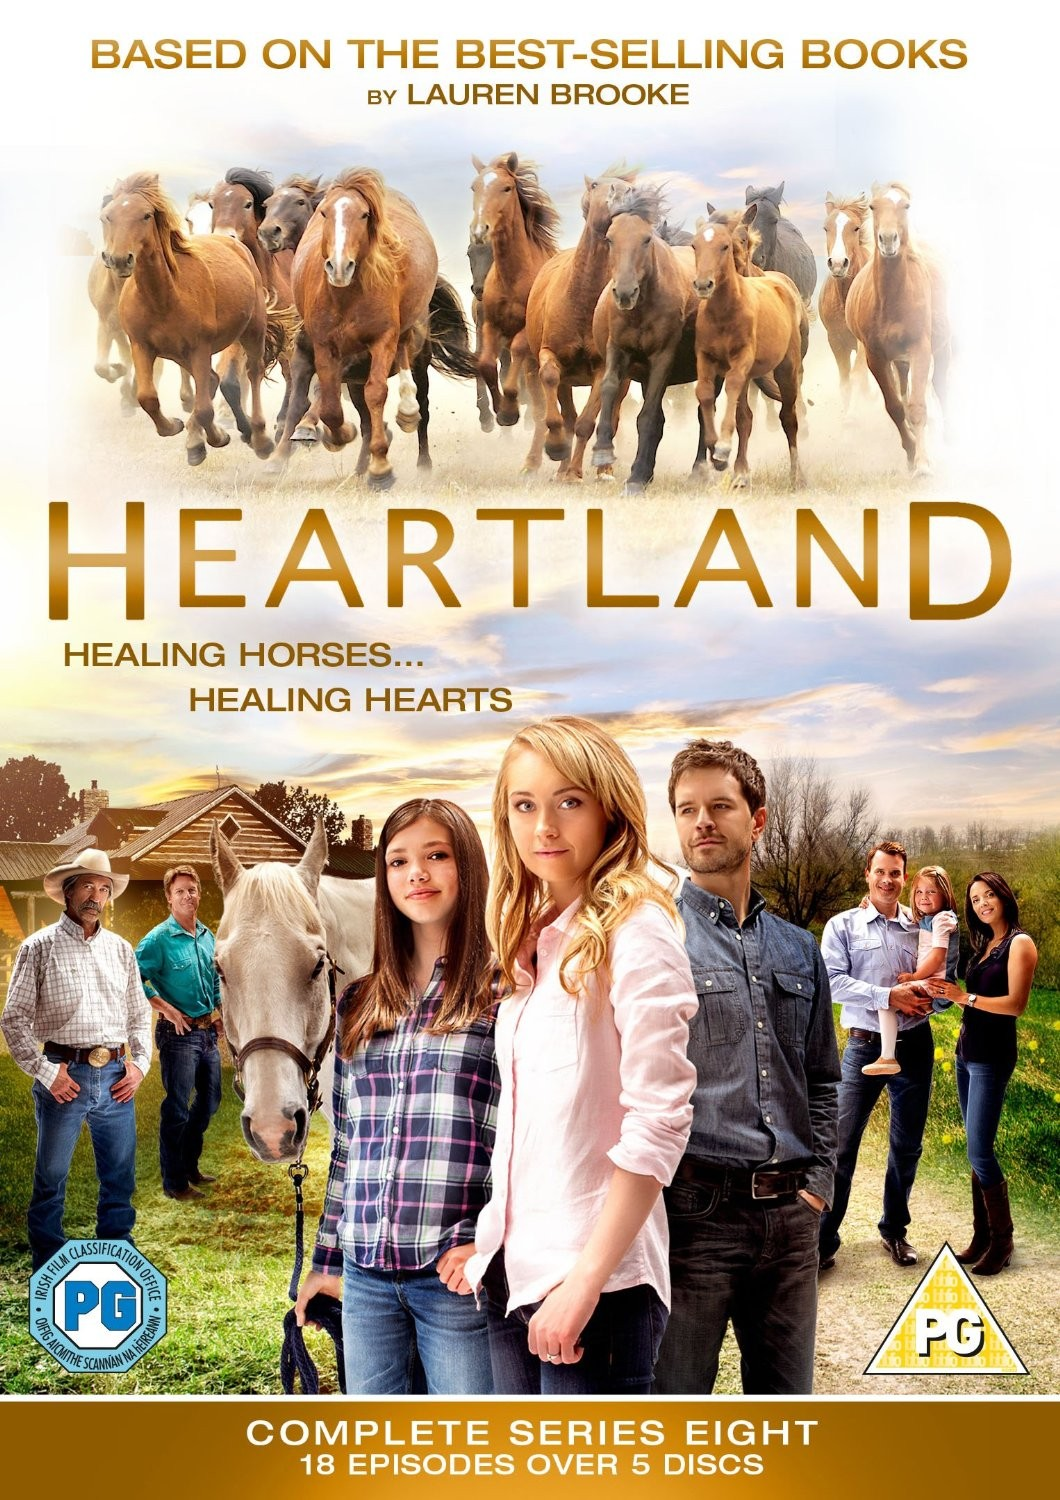 Heartland The Complete Series Eight DVD Box Set from trot-online